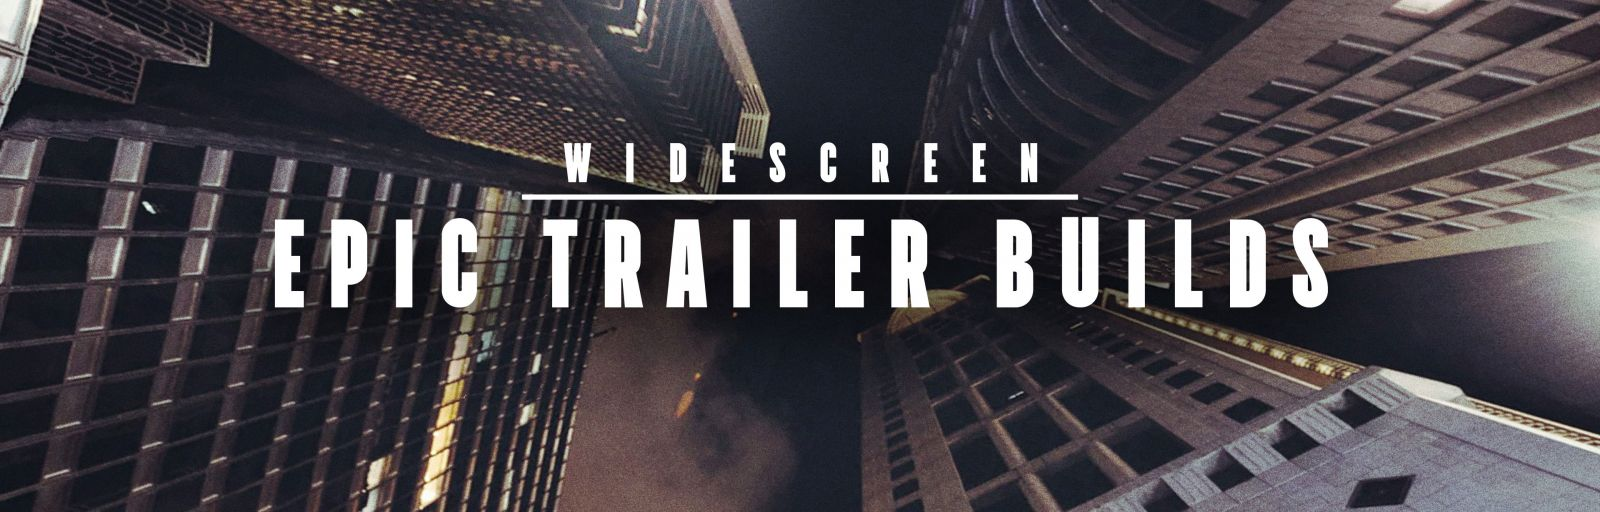 Epic Trailer Builds - Widescreen